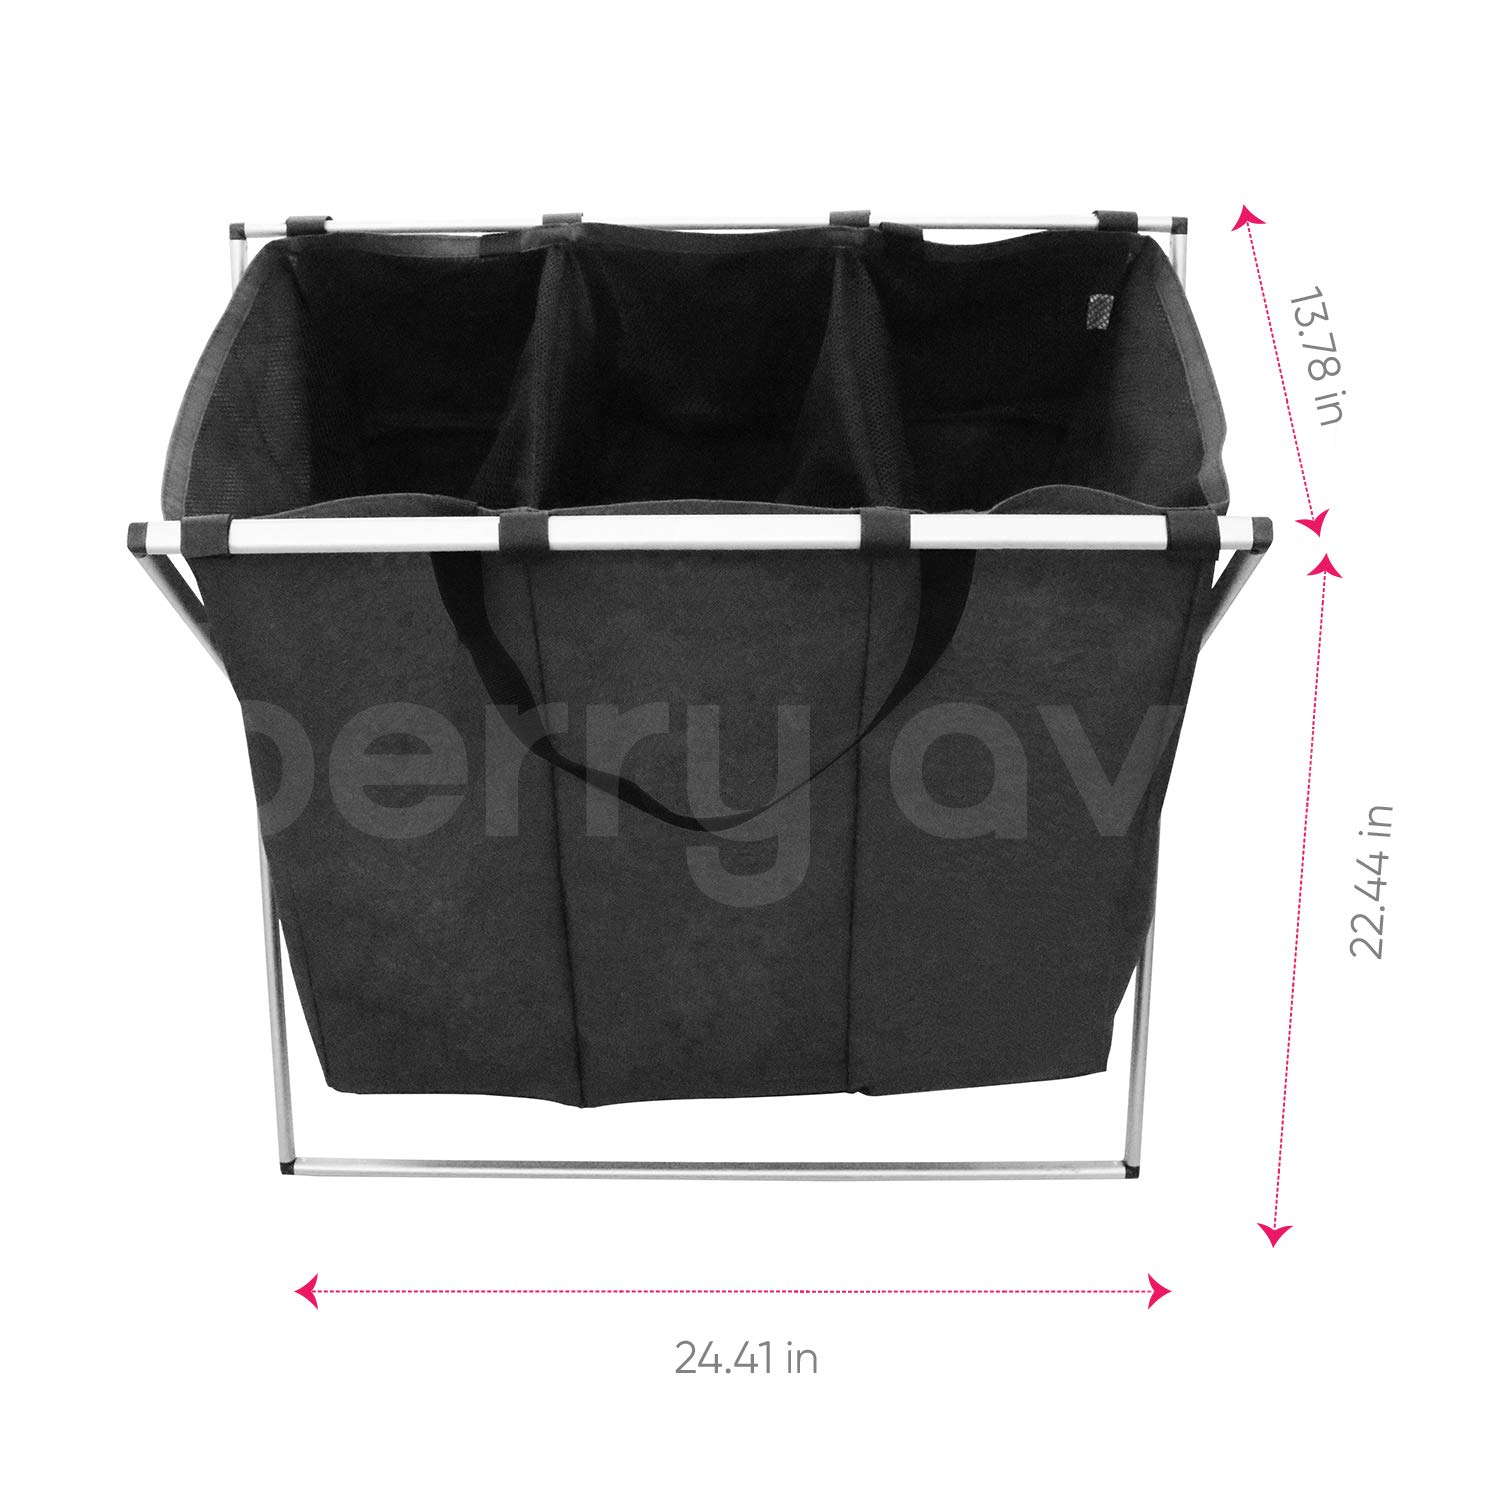 Home and College Use Berry Ave Tri-Part Laundry Basket Hamper with Wheels Grey Smart Rolling Design Adults Tall Tri-Part Bin Dirty Clothes Organizer for Kids Dark, Light, Color